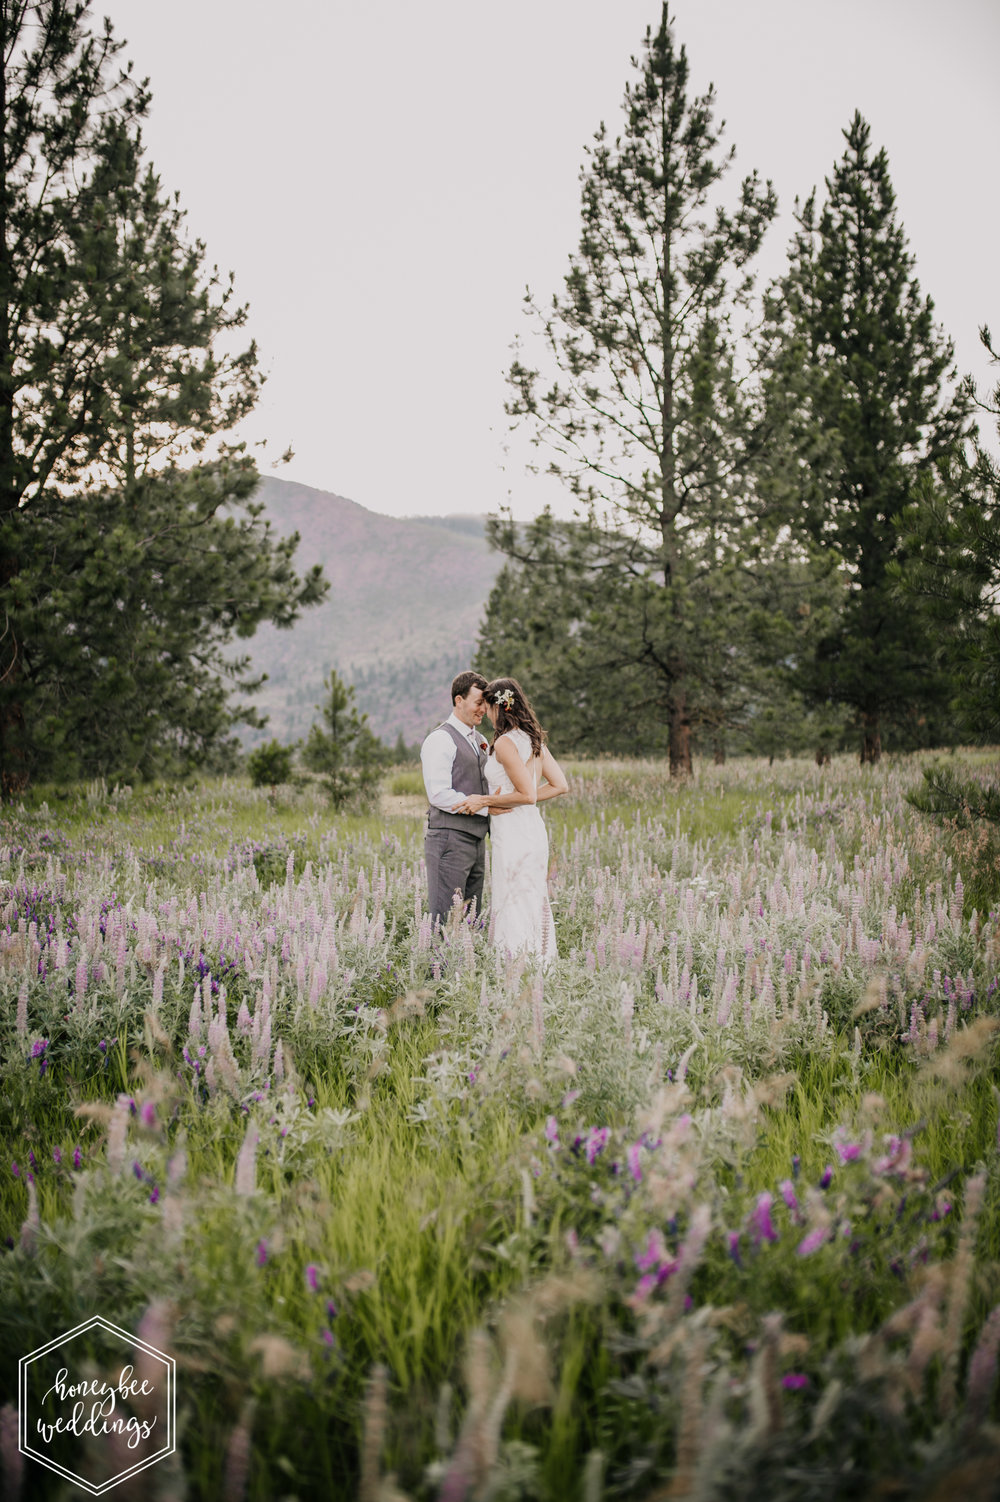 551 White Raven Wedding_Montana Wedding Photographer_Honeybee Weddings_ Meghan Maloney + Arza Hammond 2018-0700.jpg